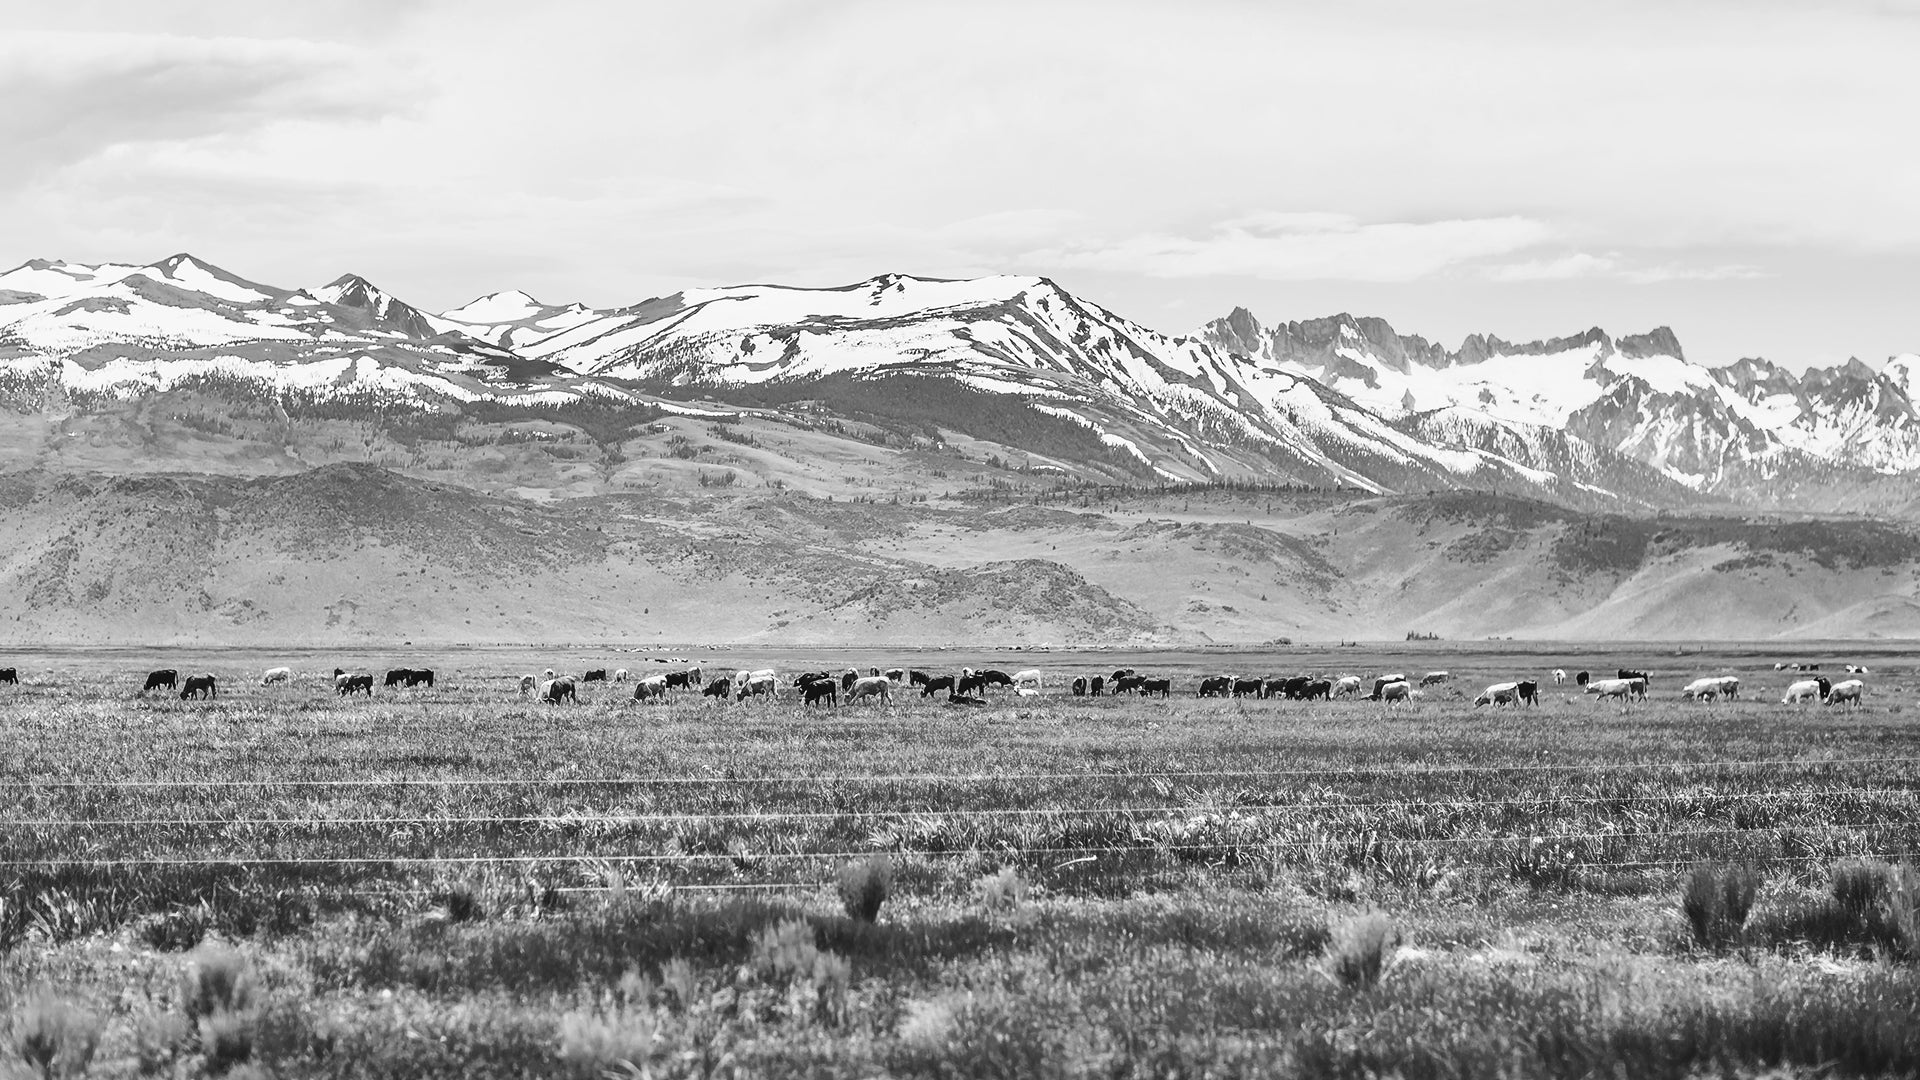 Cattle in the open fields of Wyoming